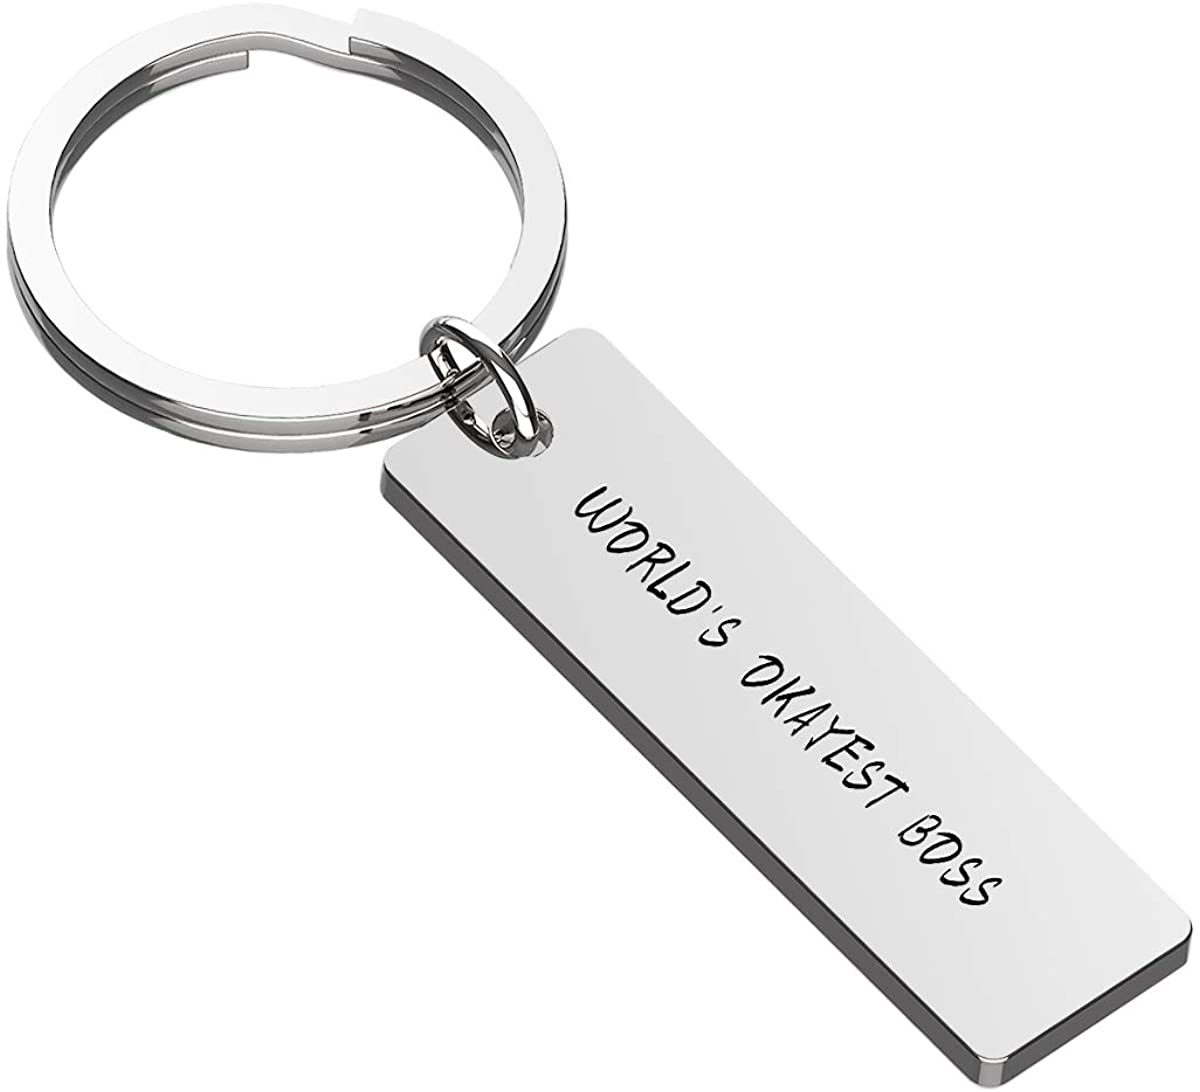 Haoflower Unique Boss Gift World's Okayest Boss Employee Keychain Gift Appreciation Gift Boss's Day Funny Manager or Supervisor Gift